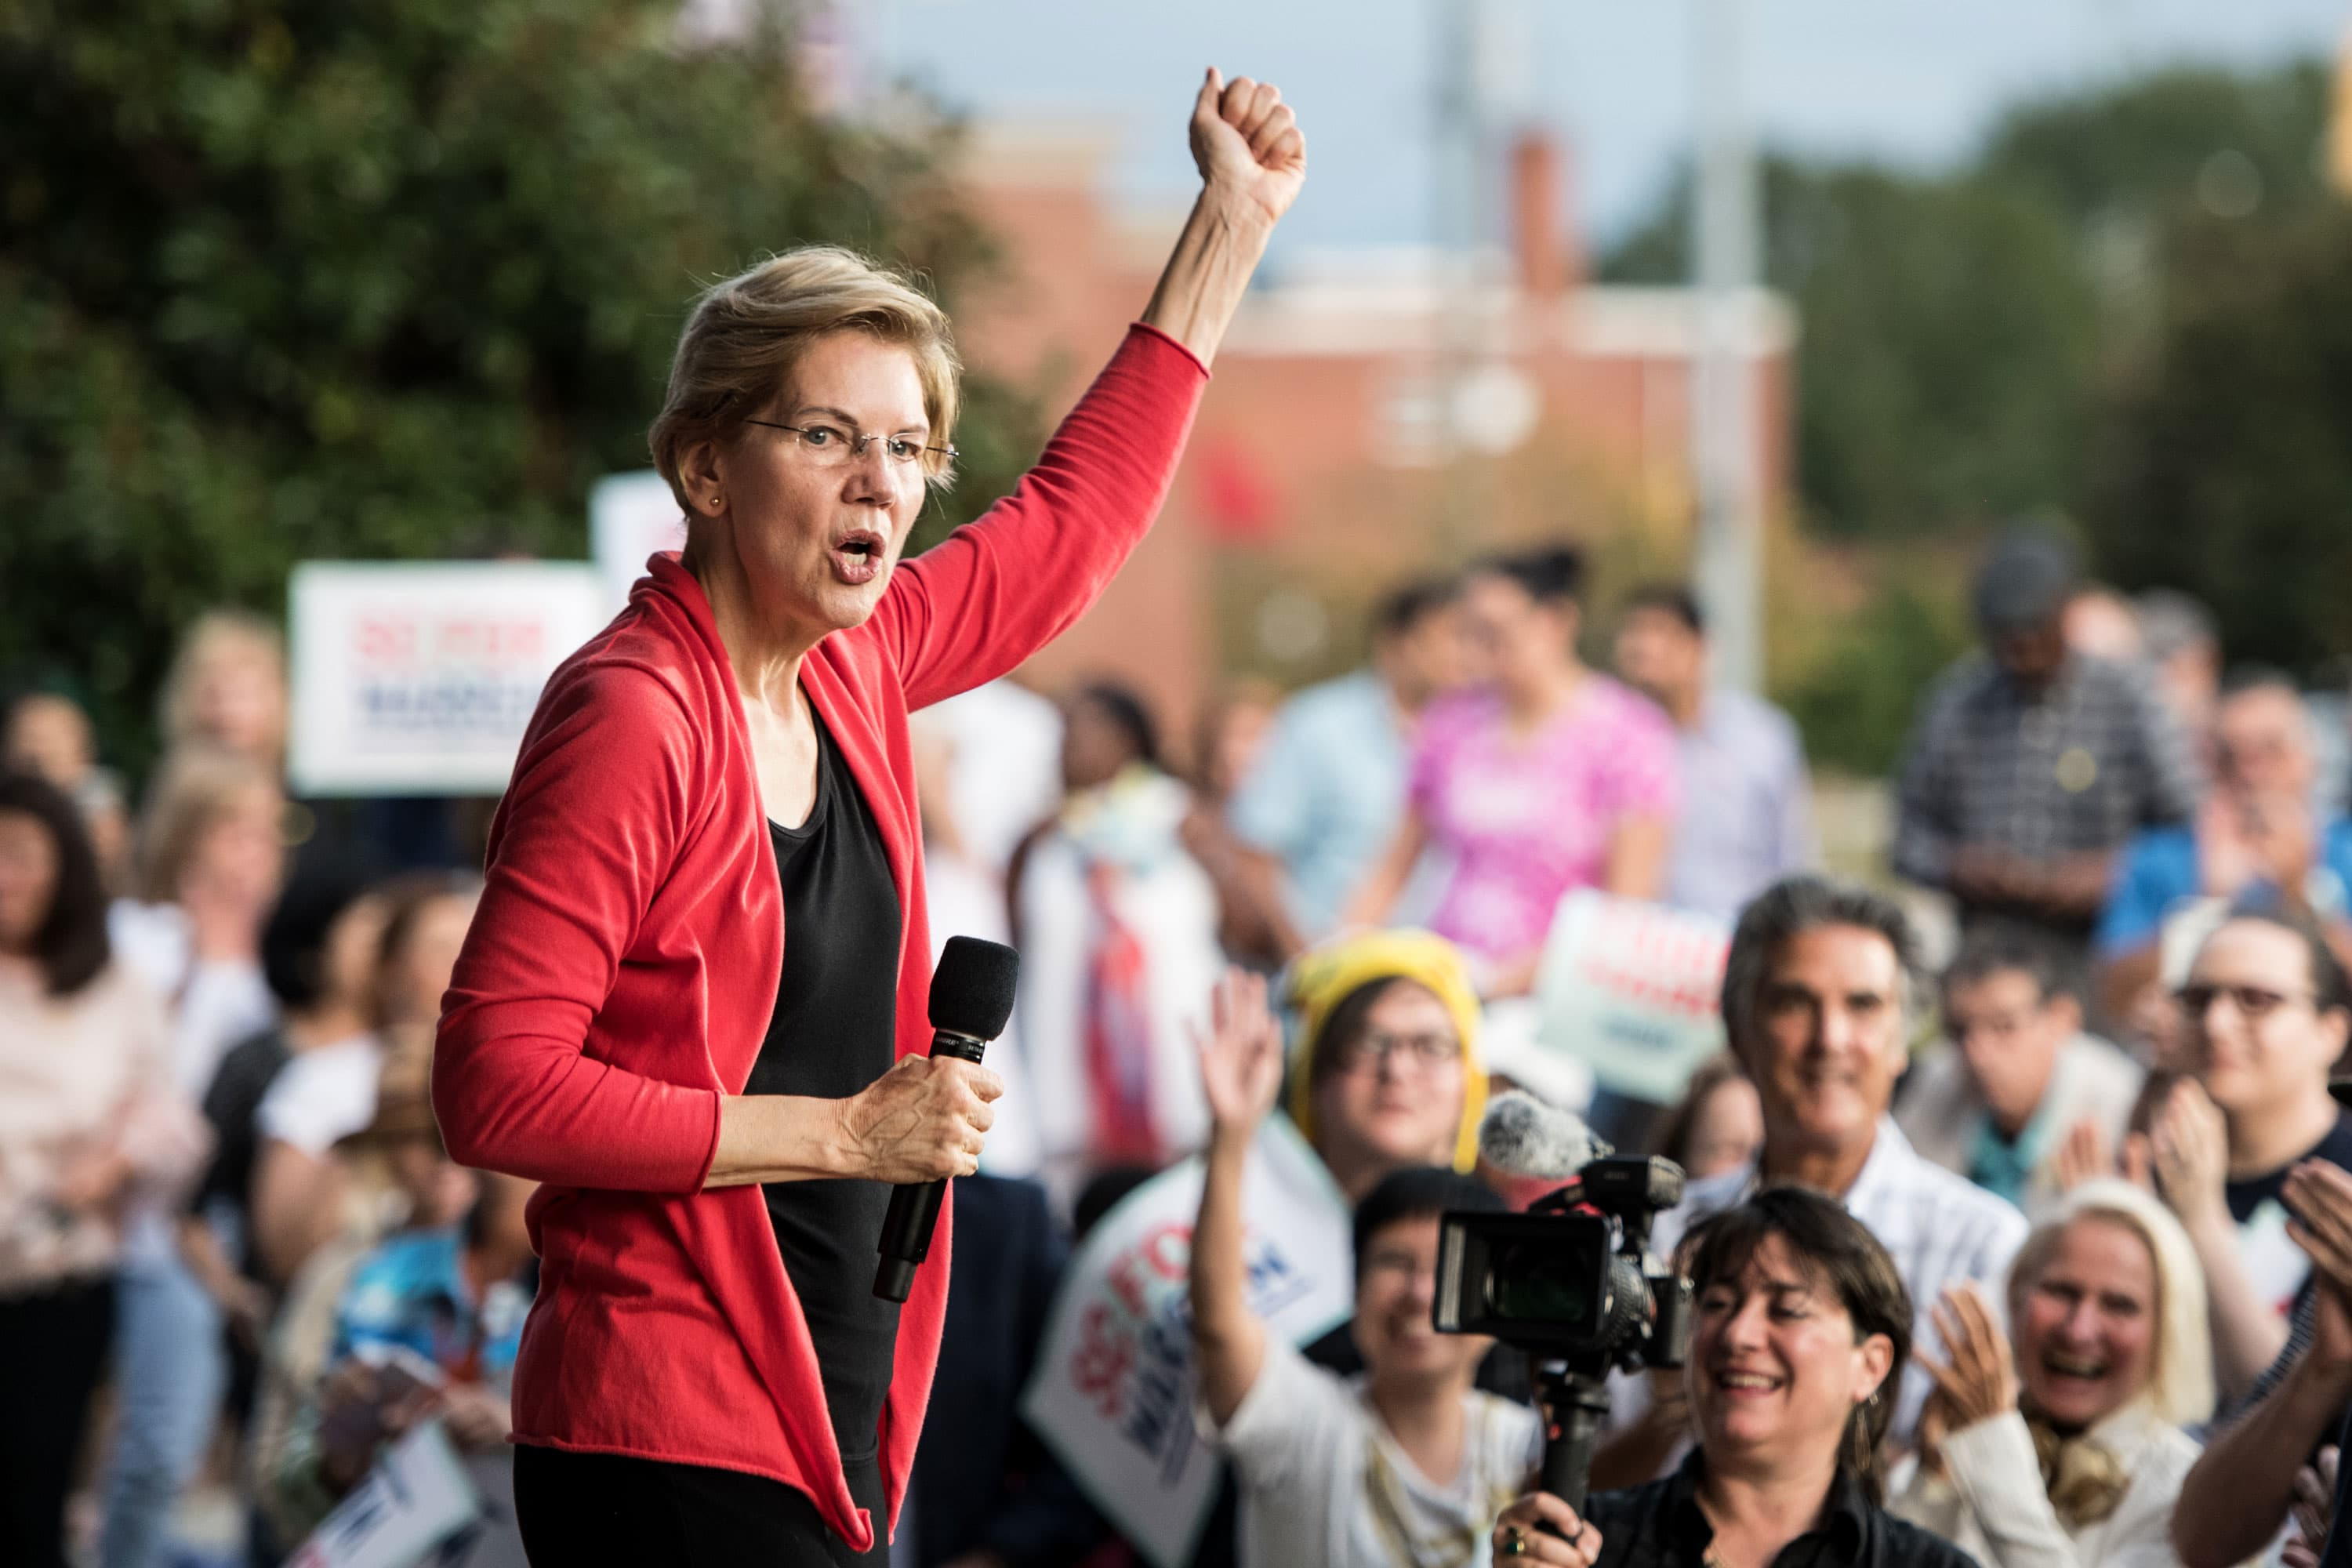 Elizabeth Warren says 'Medicare for All' will save employers $200 billion over decade